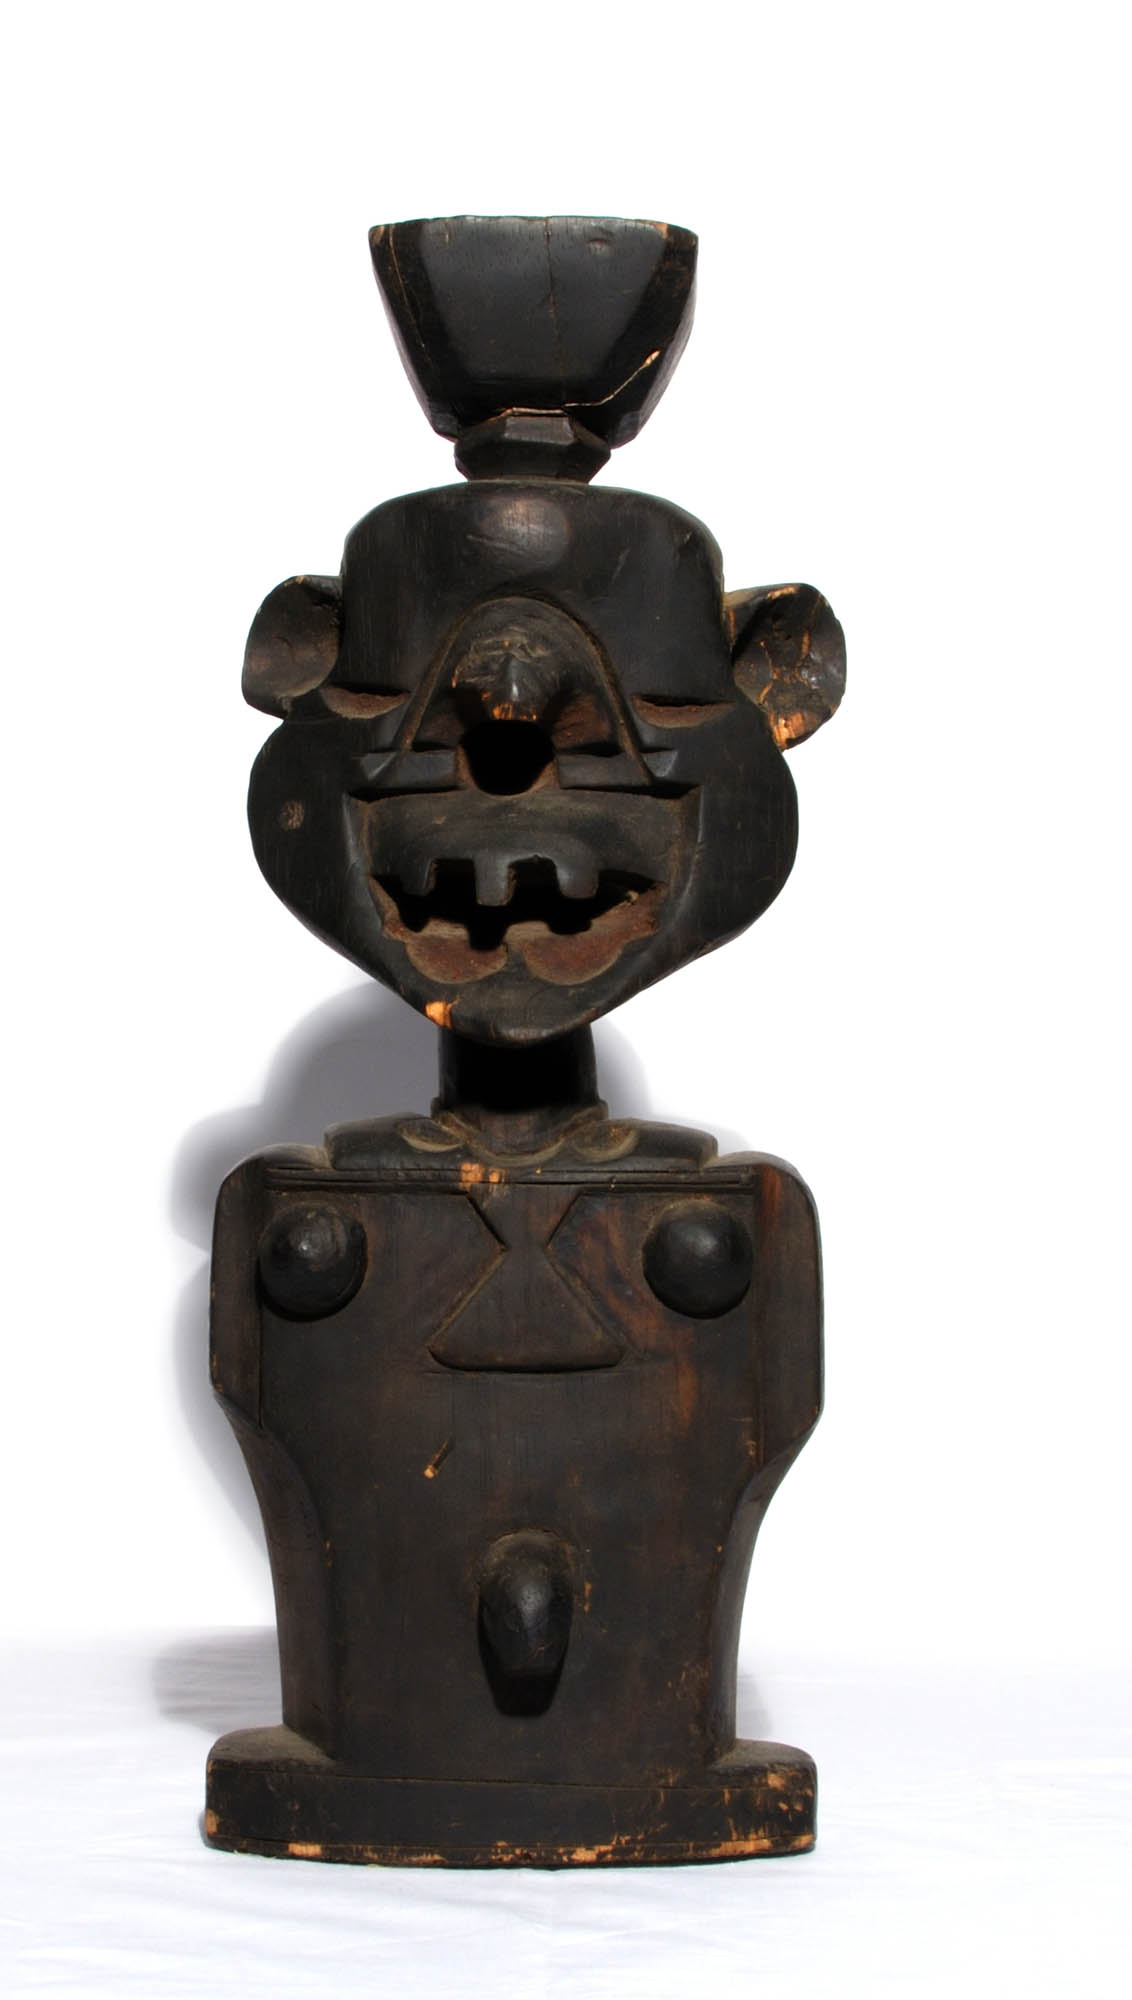 Carved wooden figure